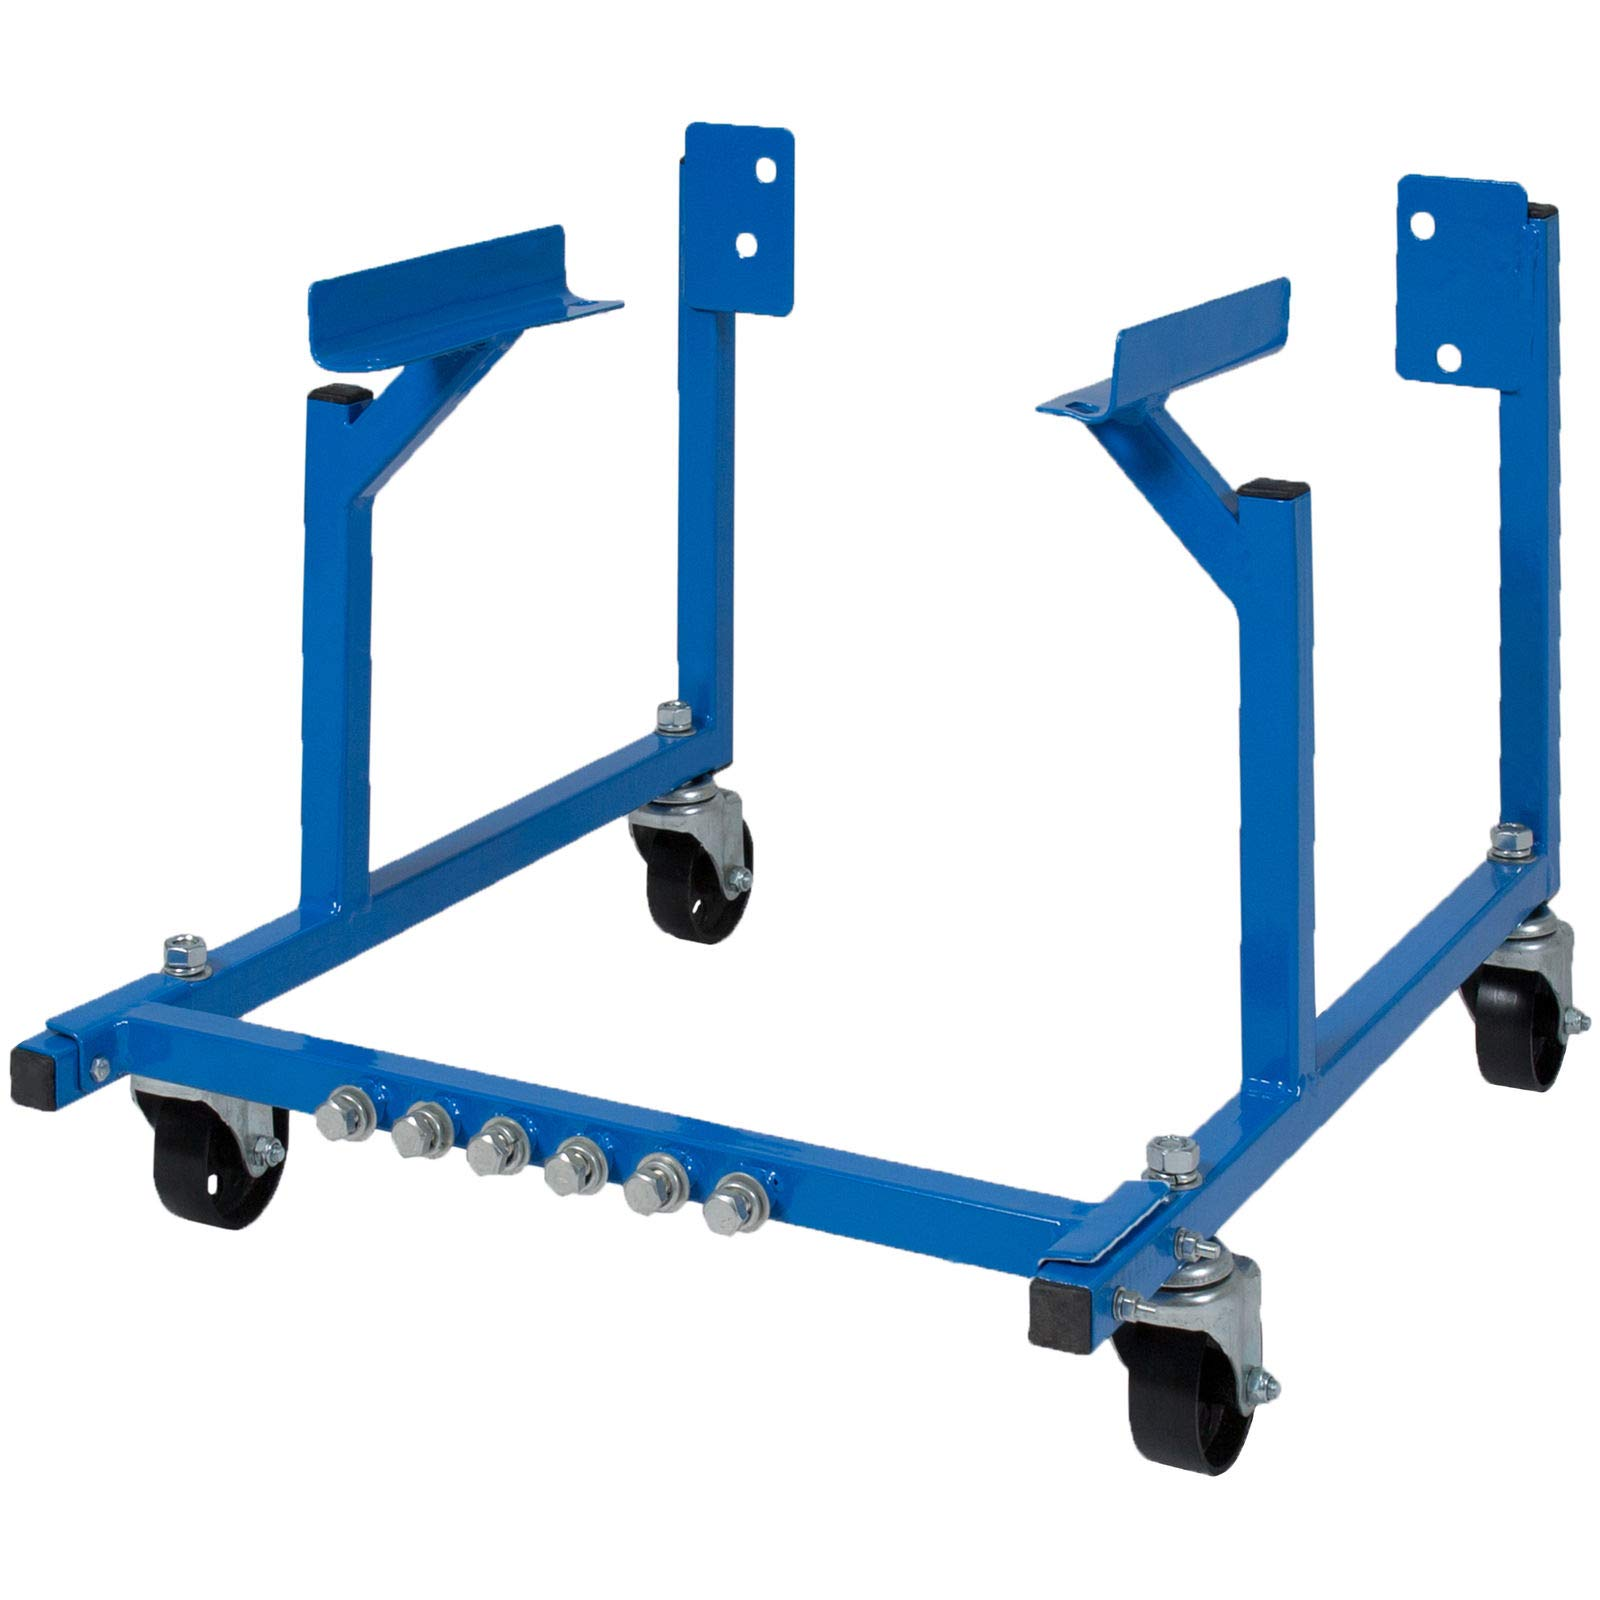 1000lb Auto Engine Cradle Stand Ford Dolly Mover Repair Rebuild with Wheels